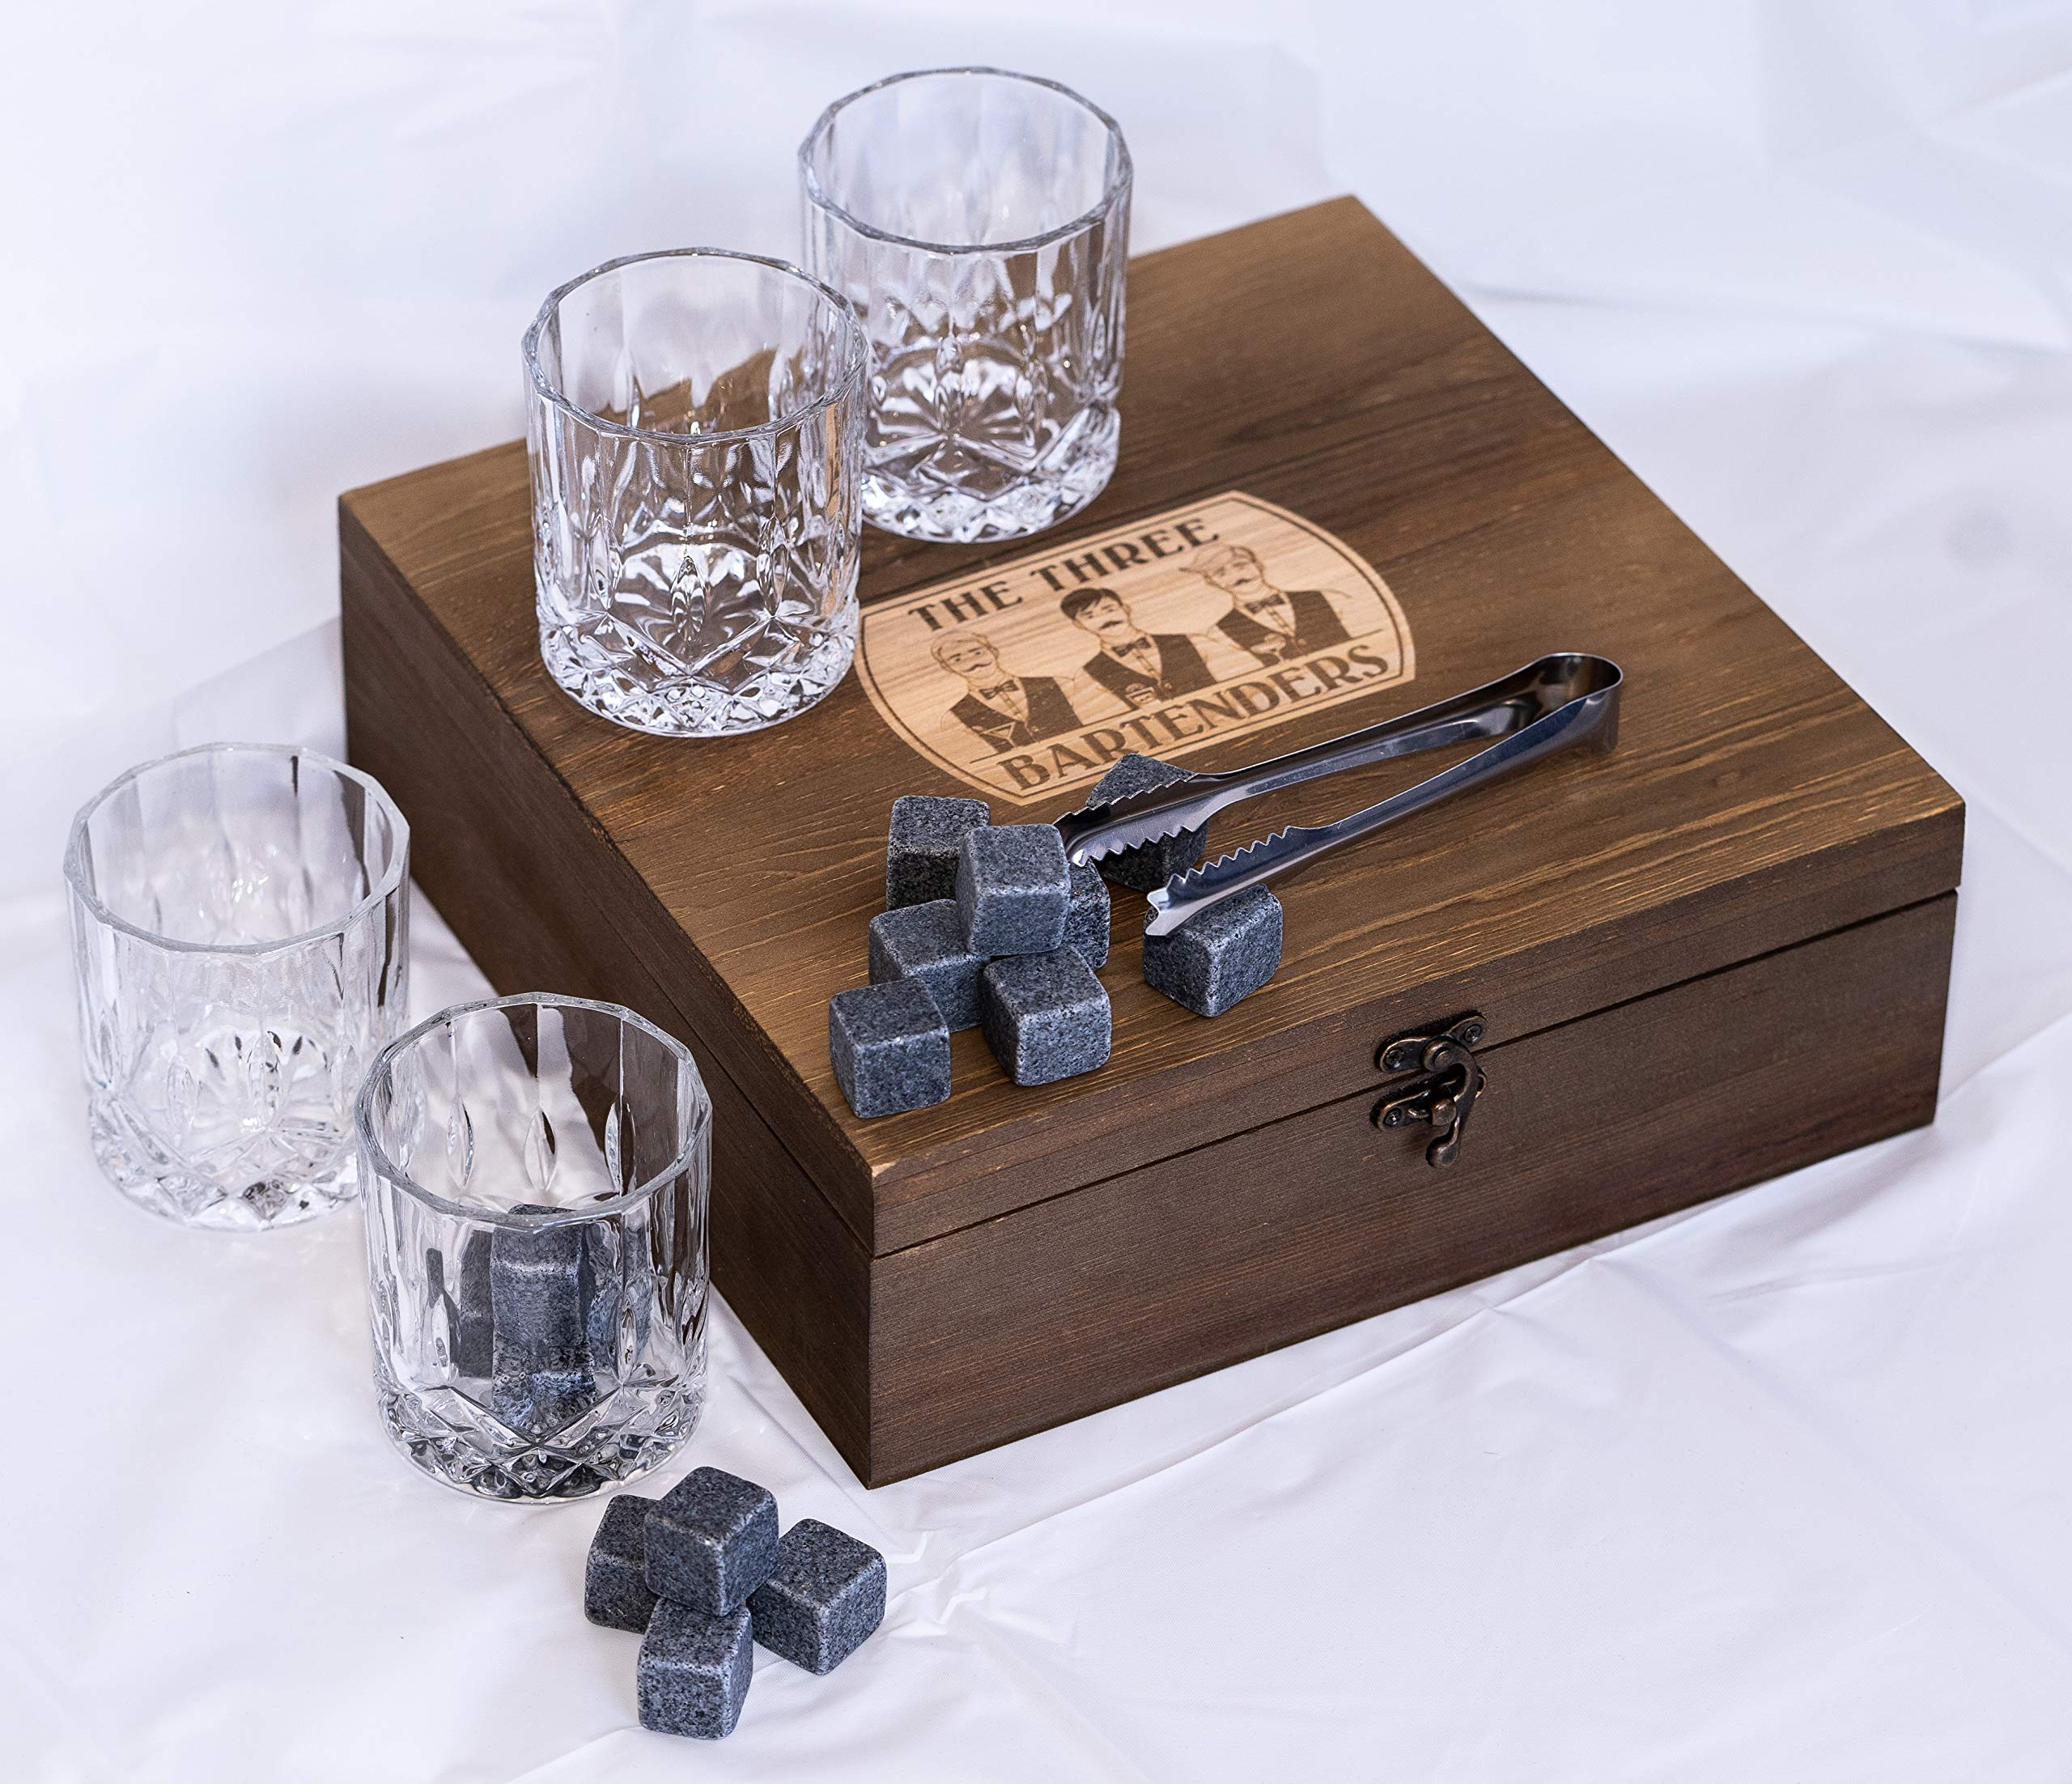 Whiskey Glasses and Stones Gift Set in Premium Wooden Presentation Box - 4 Extra Large Glasses, 16 Chilling Stones, Ideal Gift for Men, Fathers Day, Brother Gift (7.7) by The Three Bartenders (Image #2)